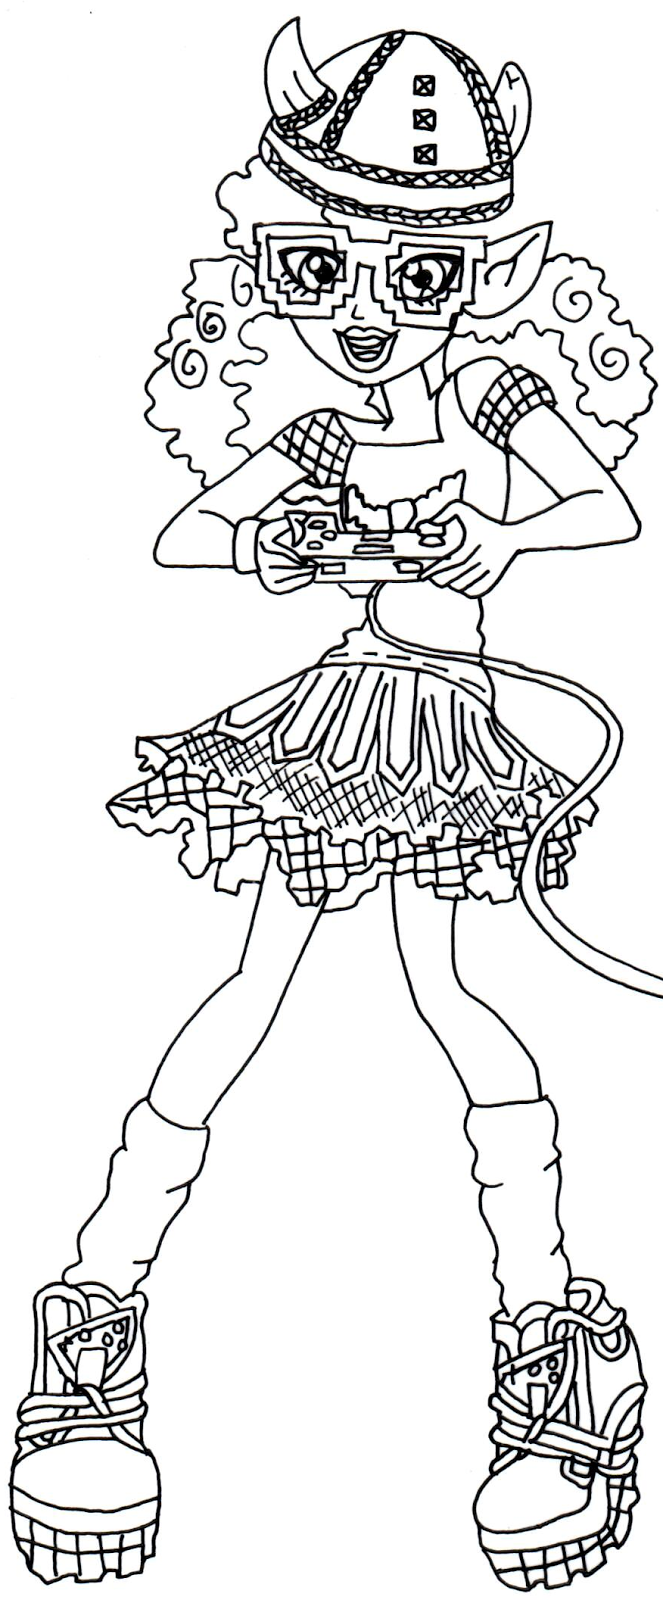 Best Draculaura Coloring Pages Pictures Inspiration - Entry Level ...